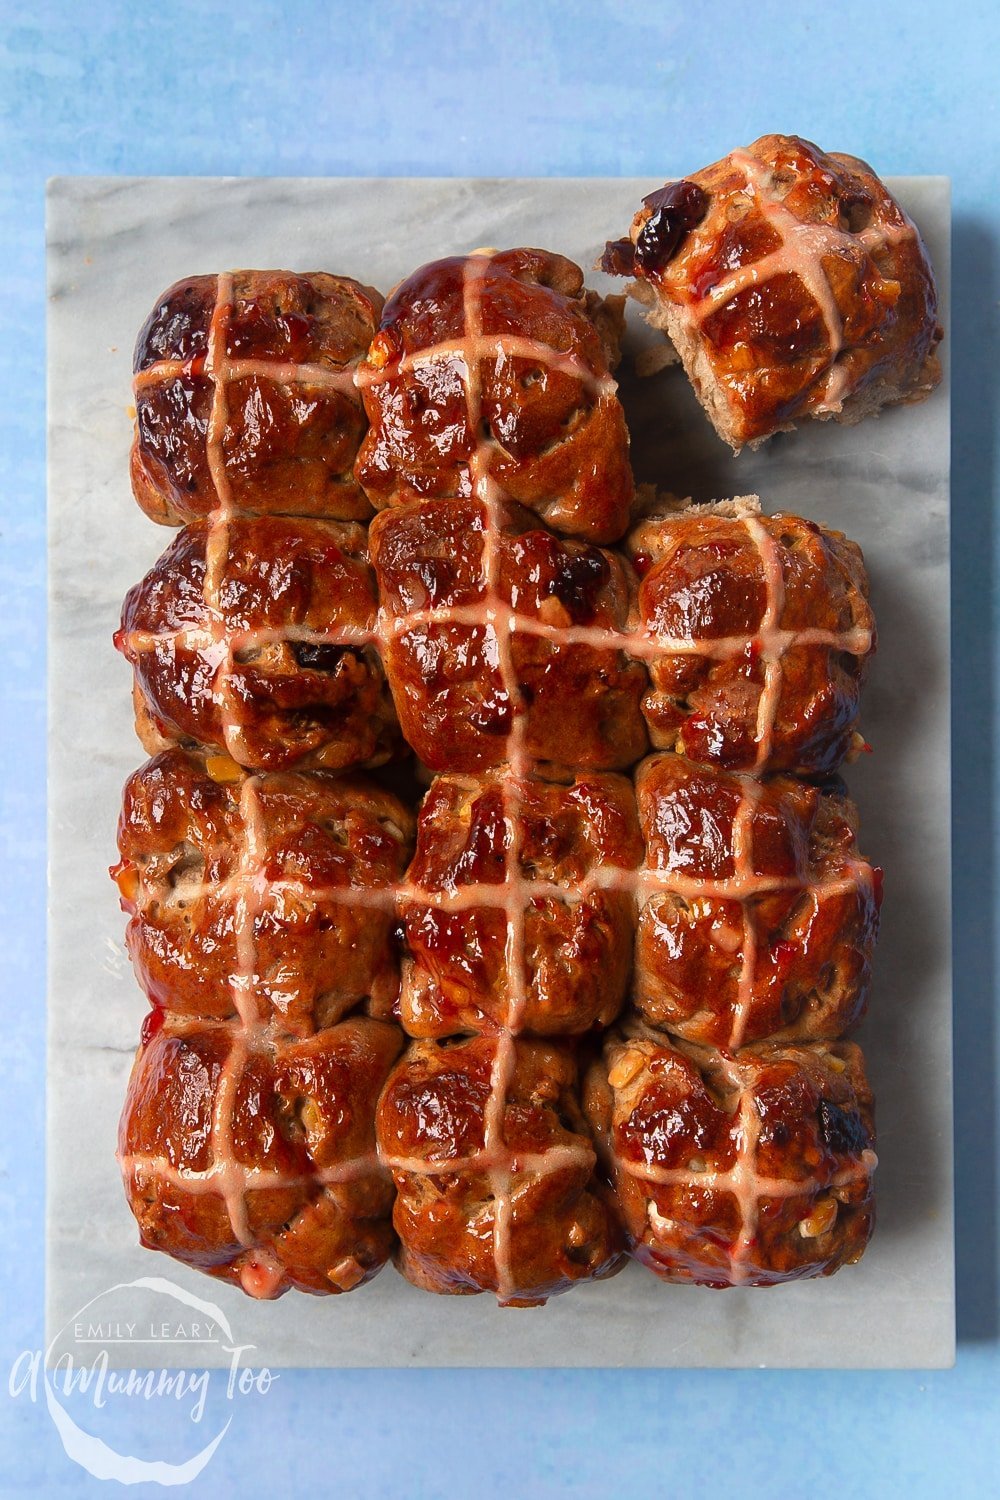 12 vegan hot cross buns on a marble board. One is lifted away from the others.